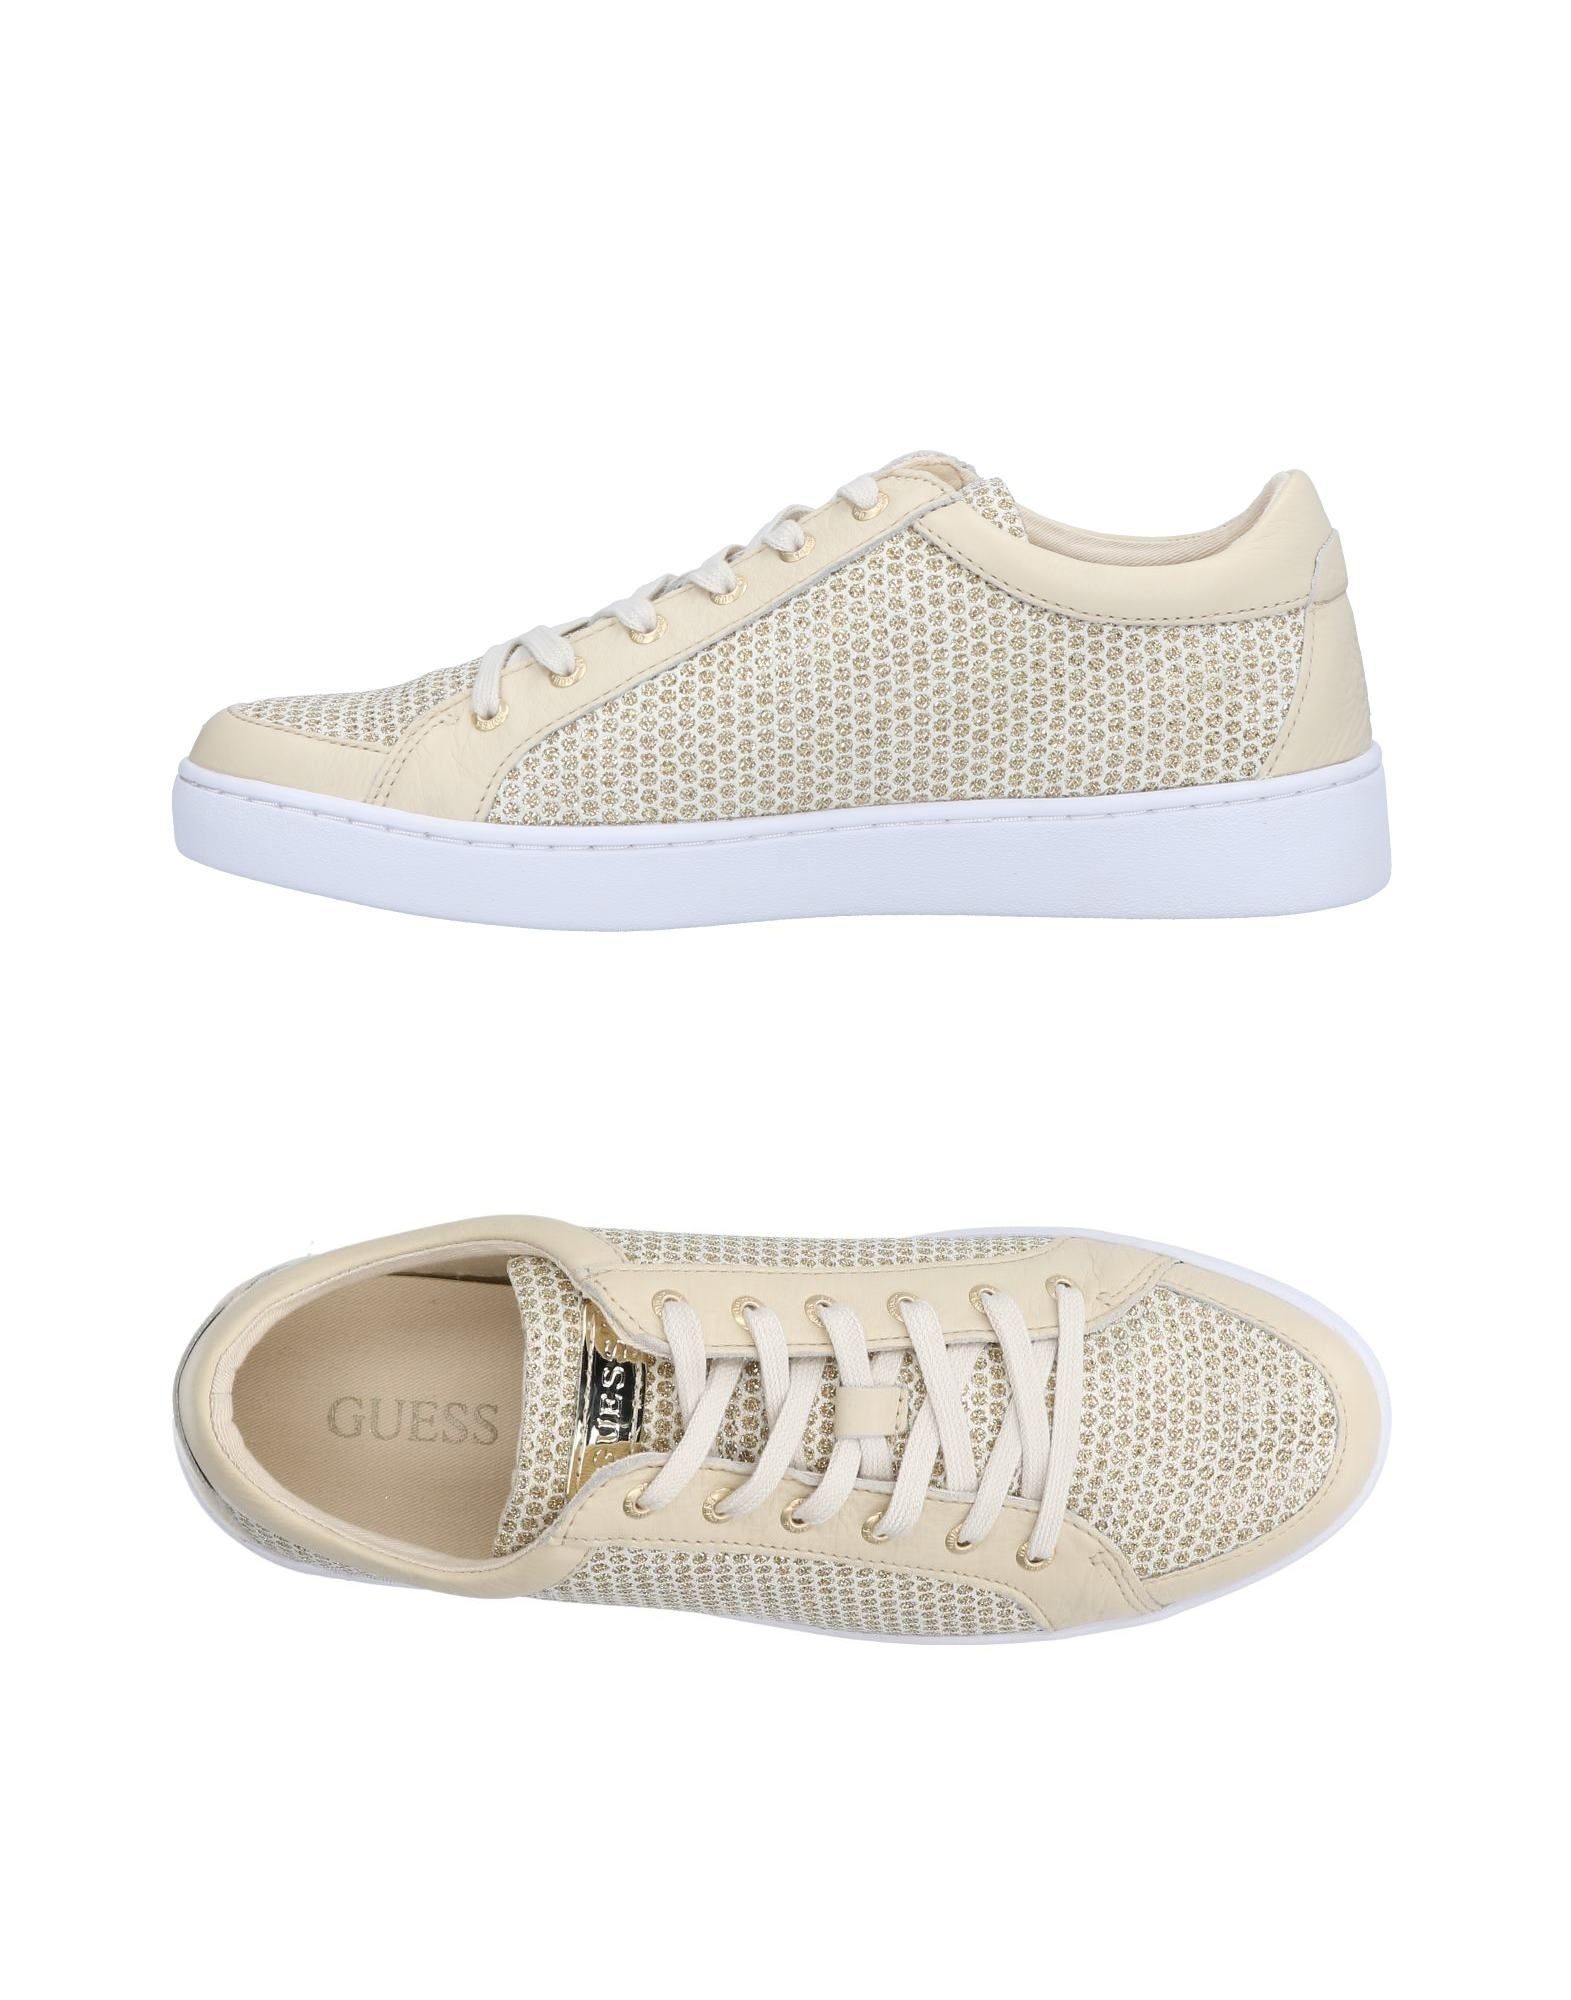 Moda Sneakers Guess Donna - 11493498JS